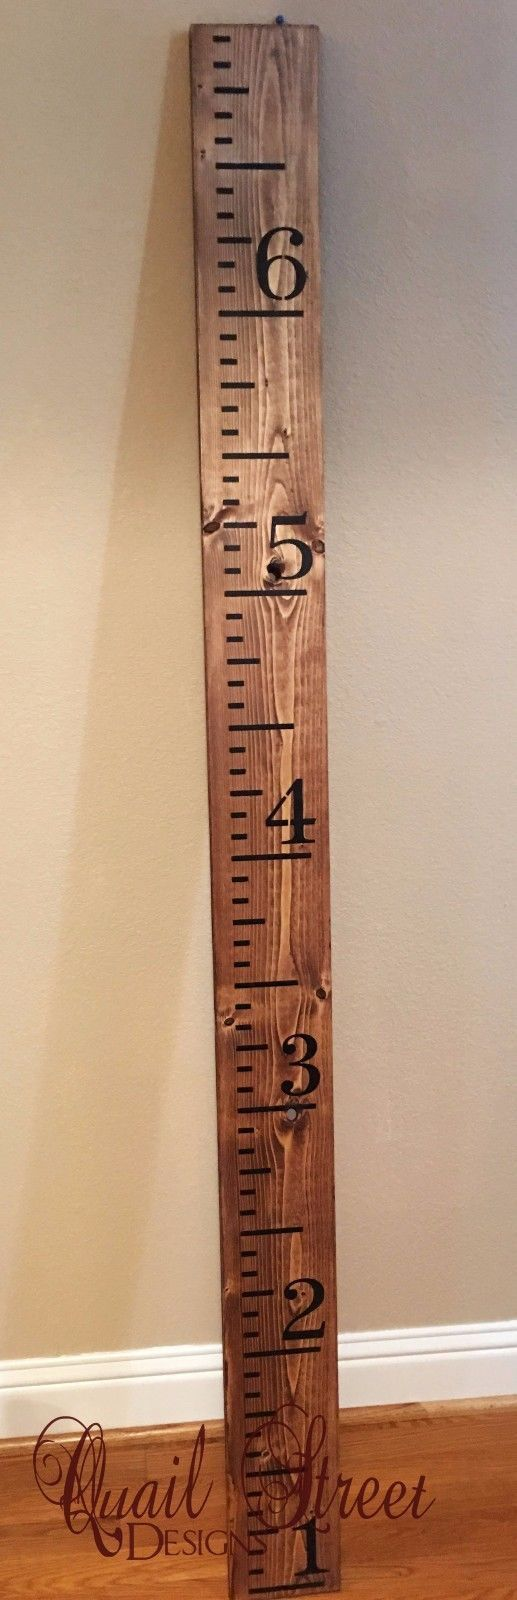 Hand painted wood growth chart ruler custom colors made in hand painted wood growth chart ruler custom colors made in texas geenschuldenfo Choice Image